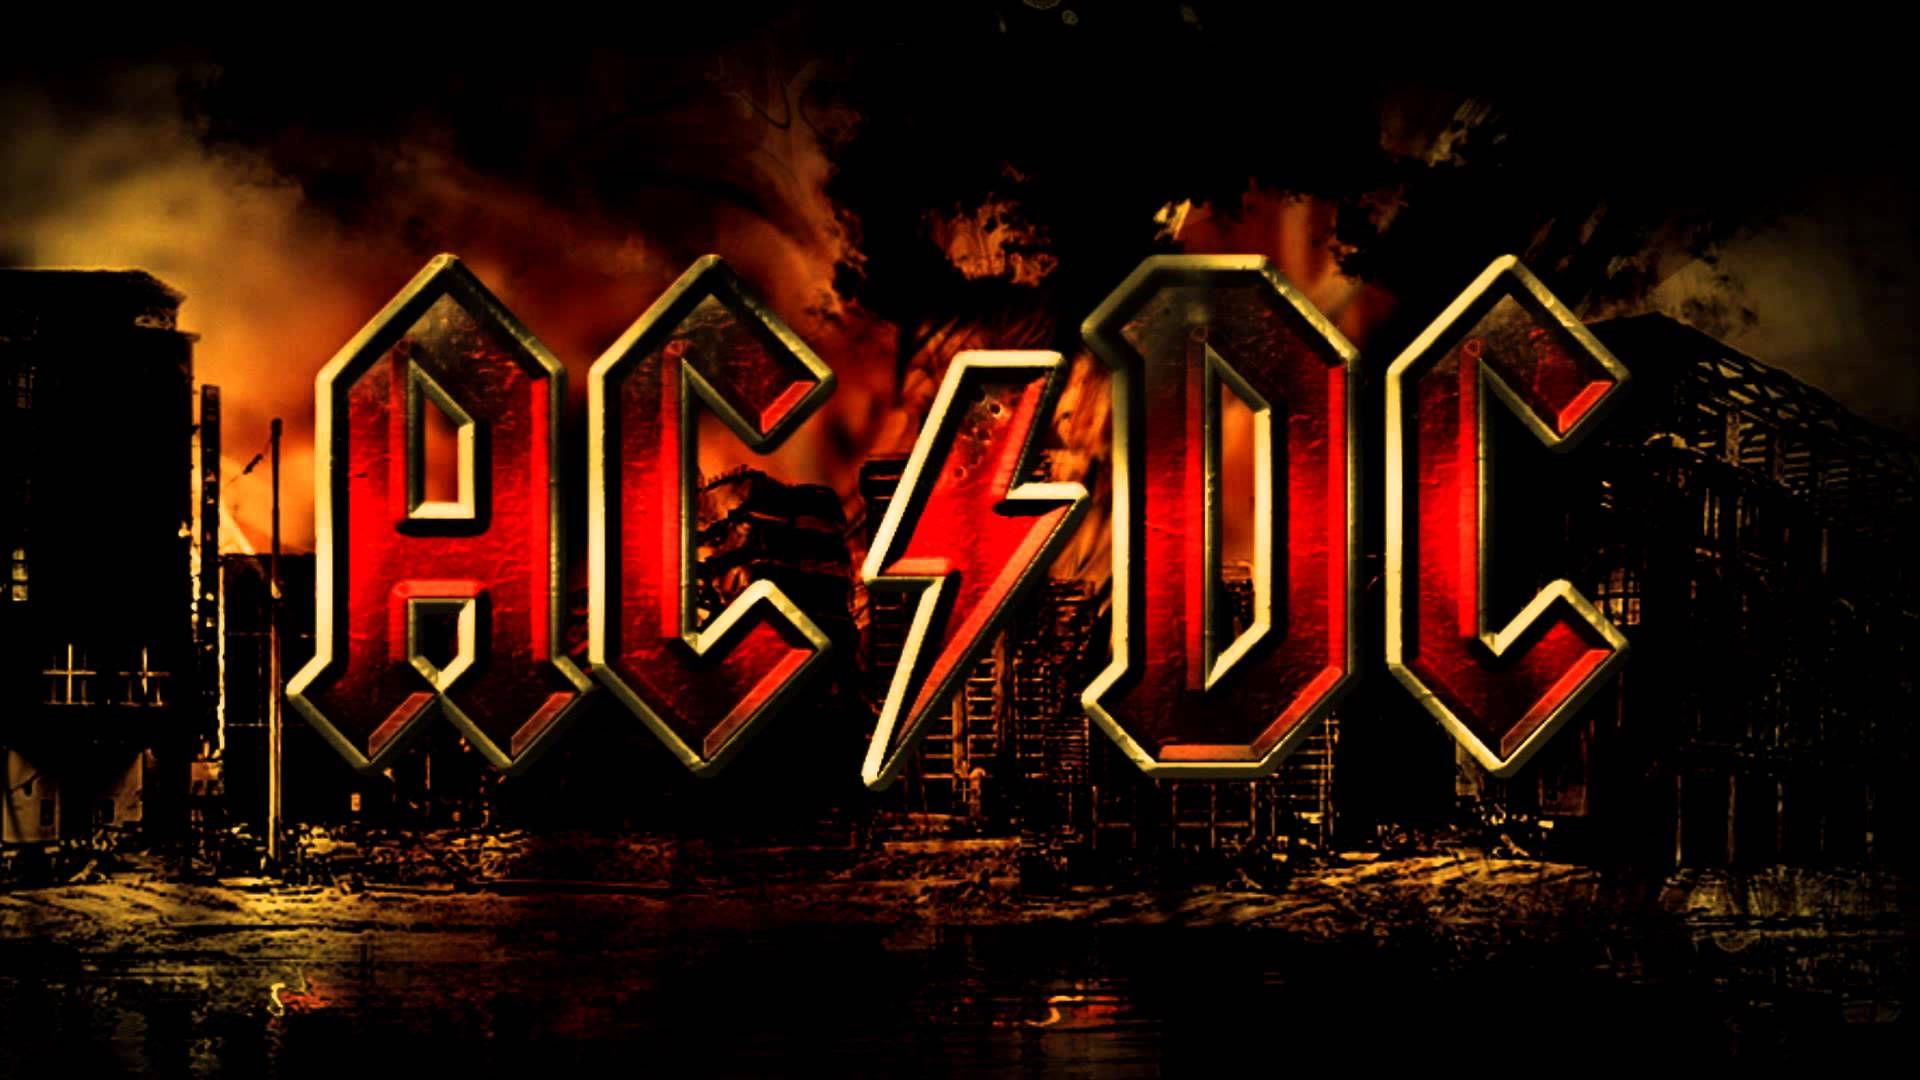 music wallpaper ac dc thunderstruck wallpapers phone with epic